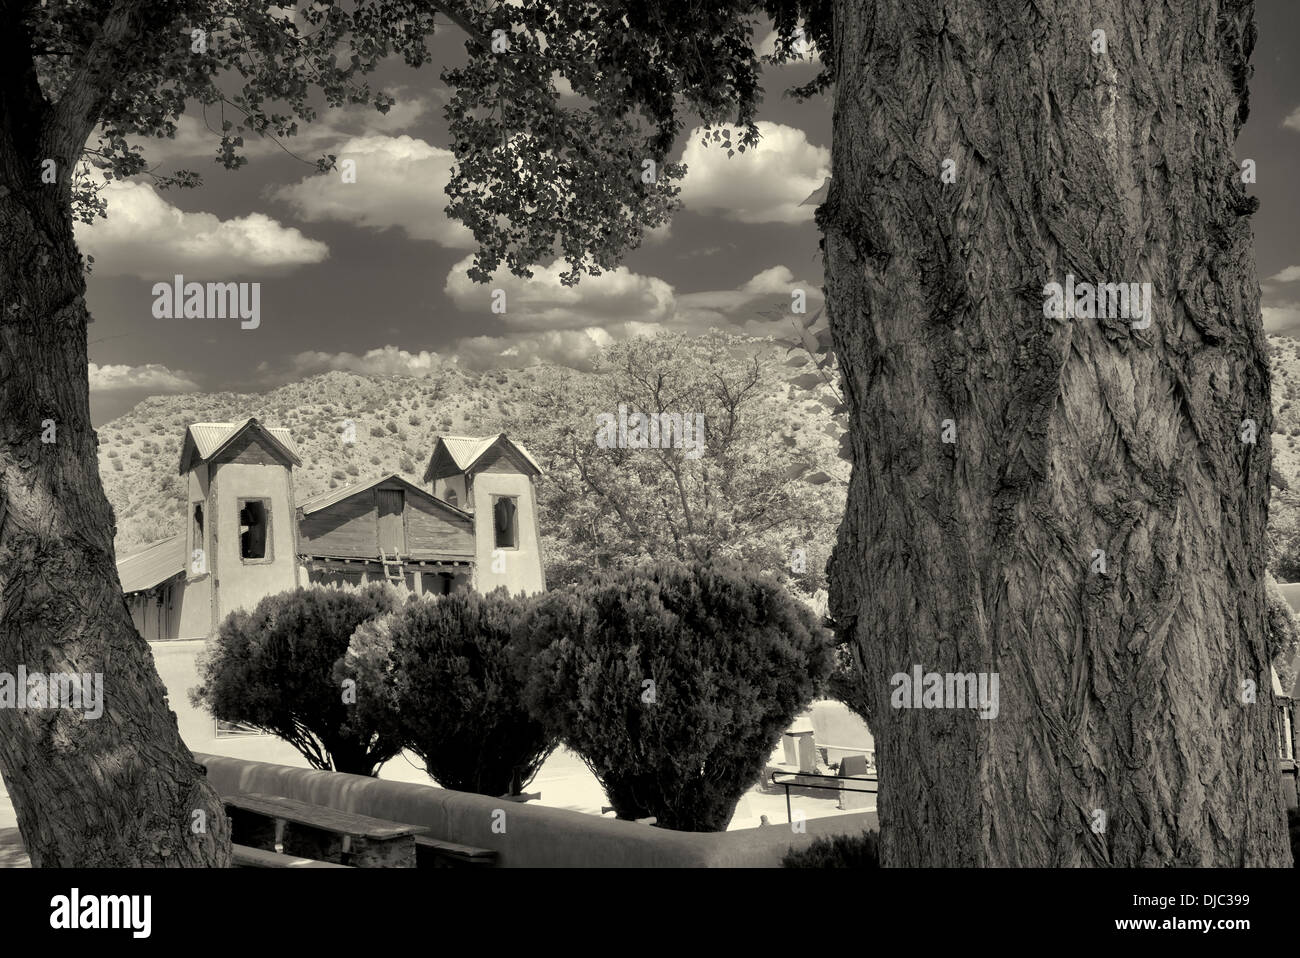 Santuario de Chimayo church. Chimayo, New Mexico - Stock Image